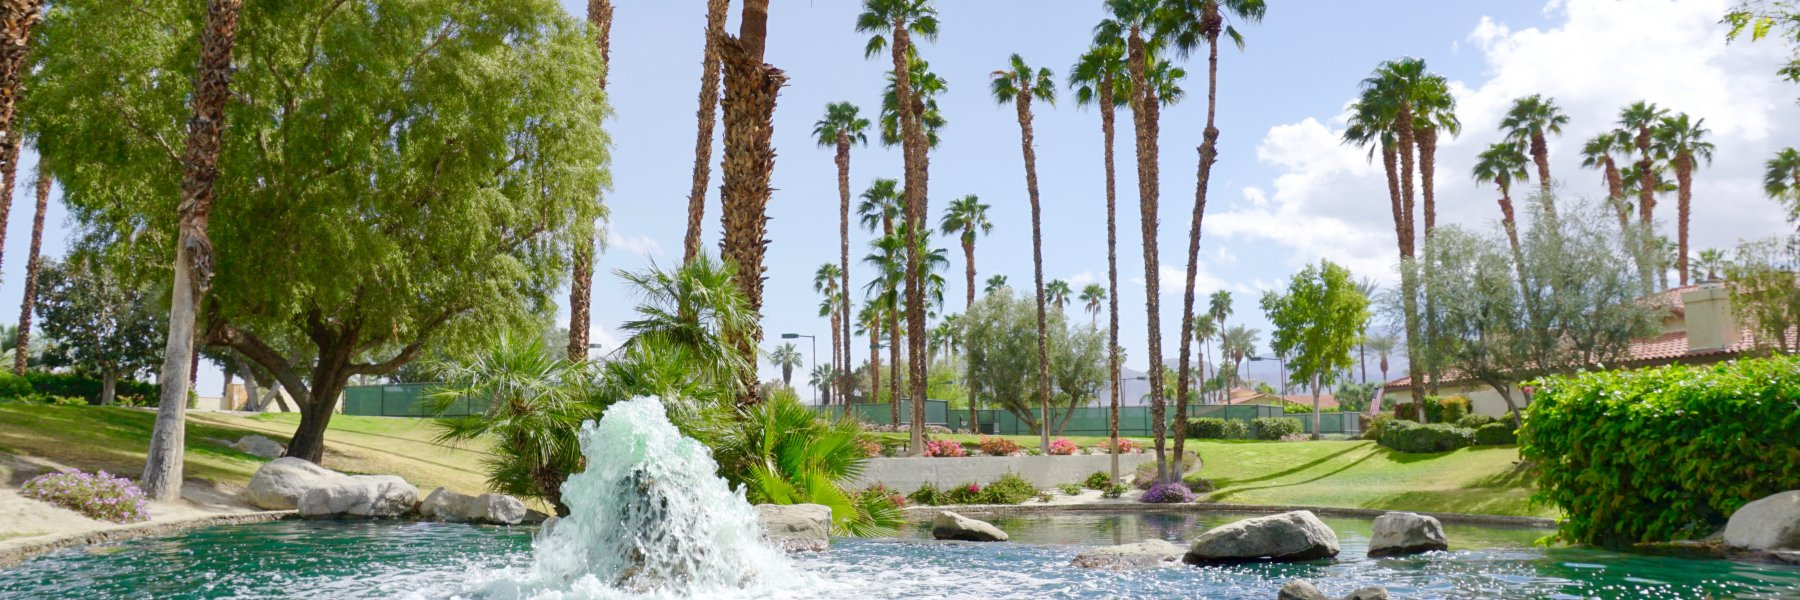 Park Palms is a community of homes in Palm Desert California